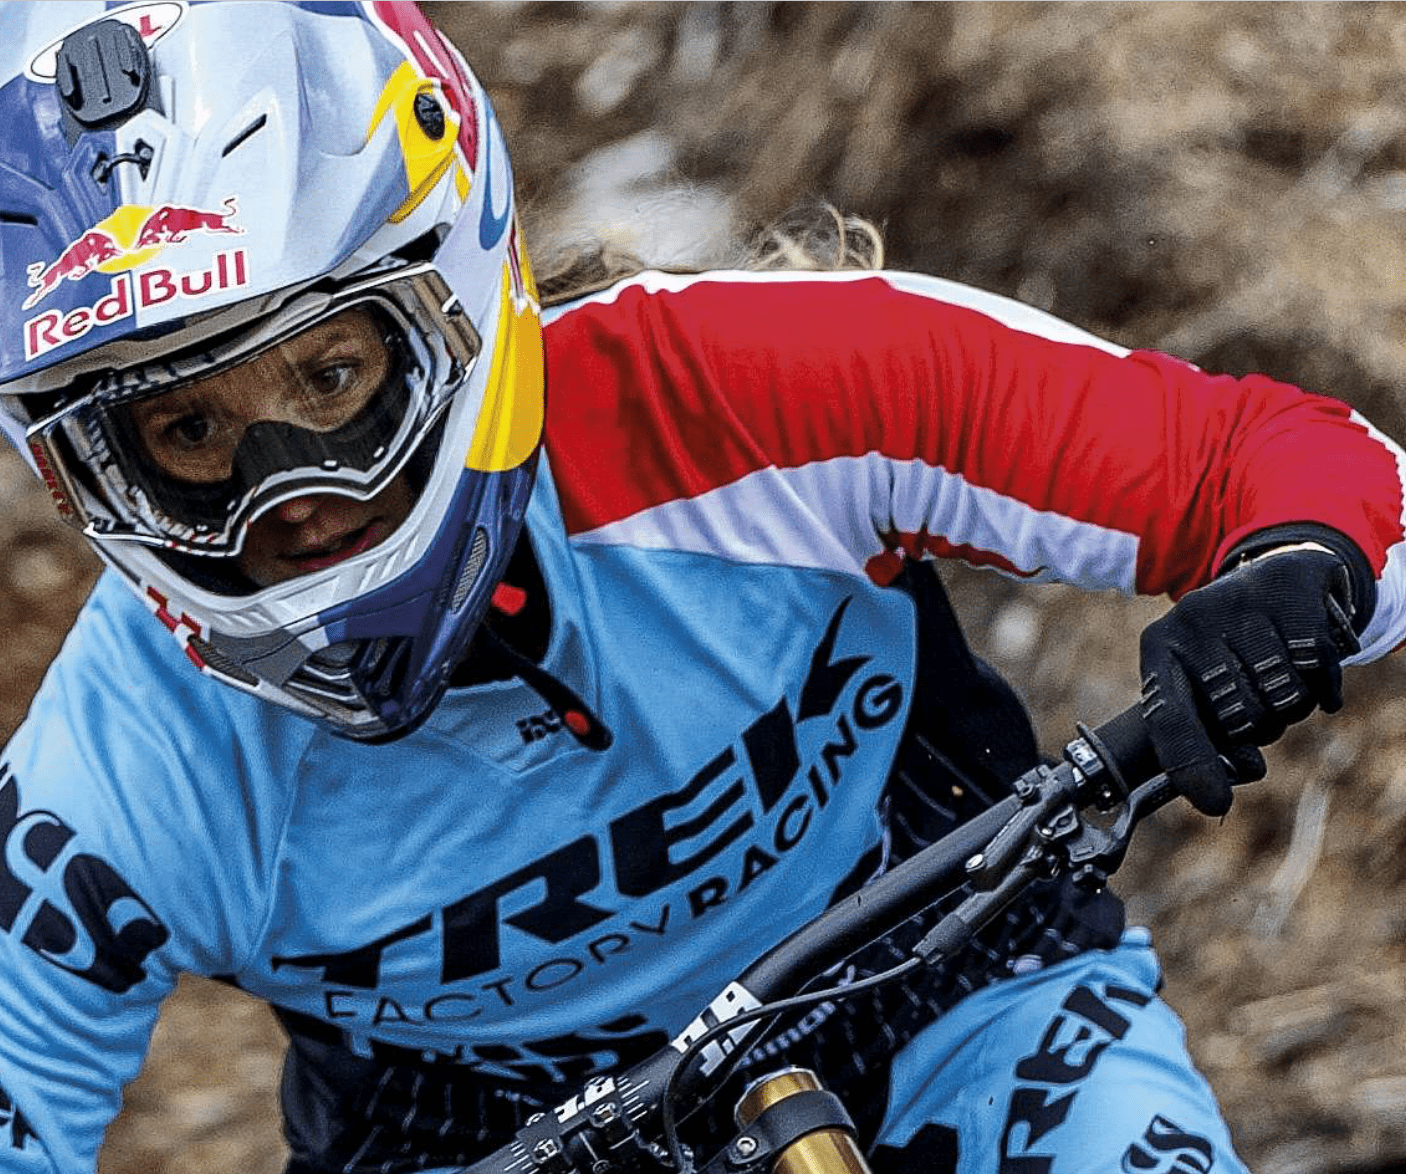 Rachel Atherton mountain biking